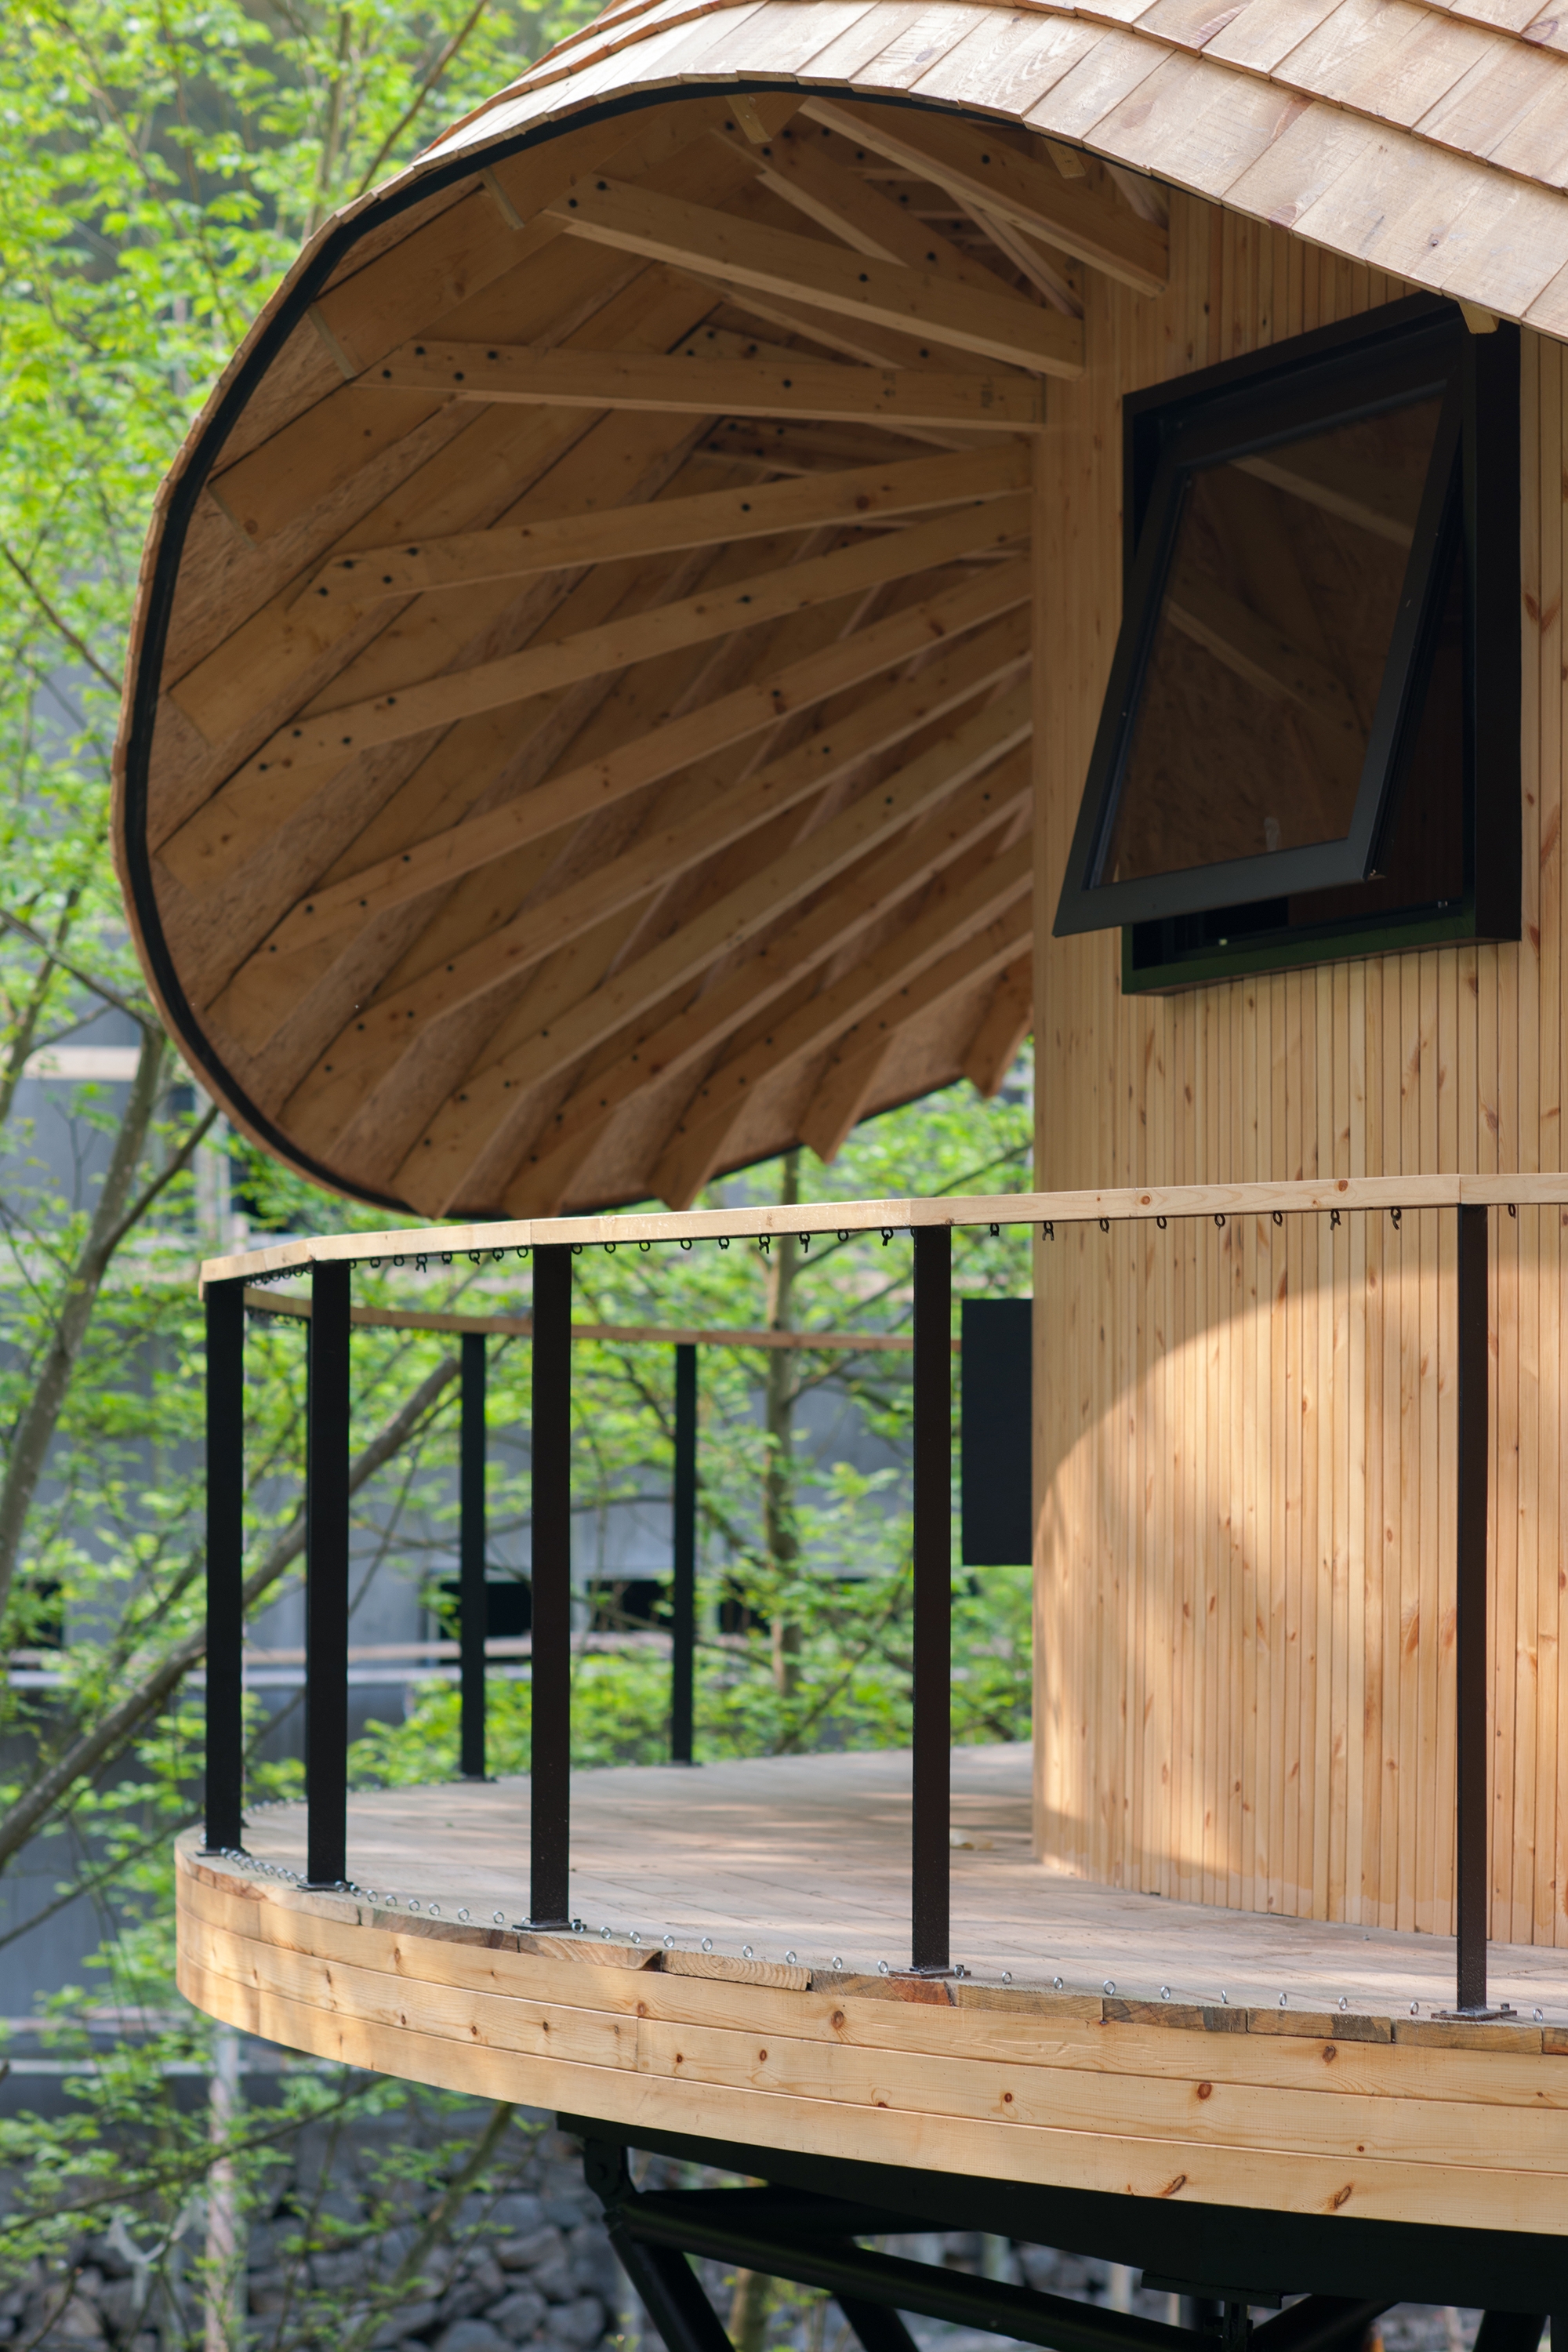 Gallery Of Treewow O A Tree House Of Curved Round Roof